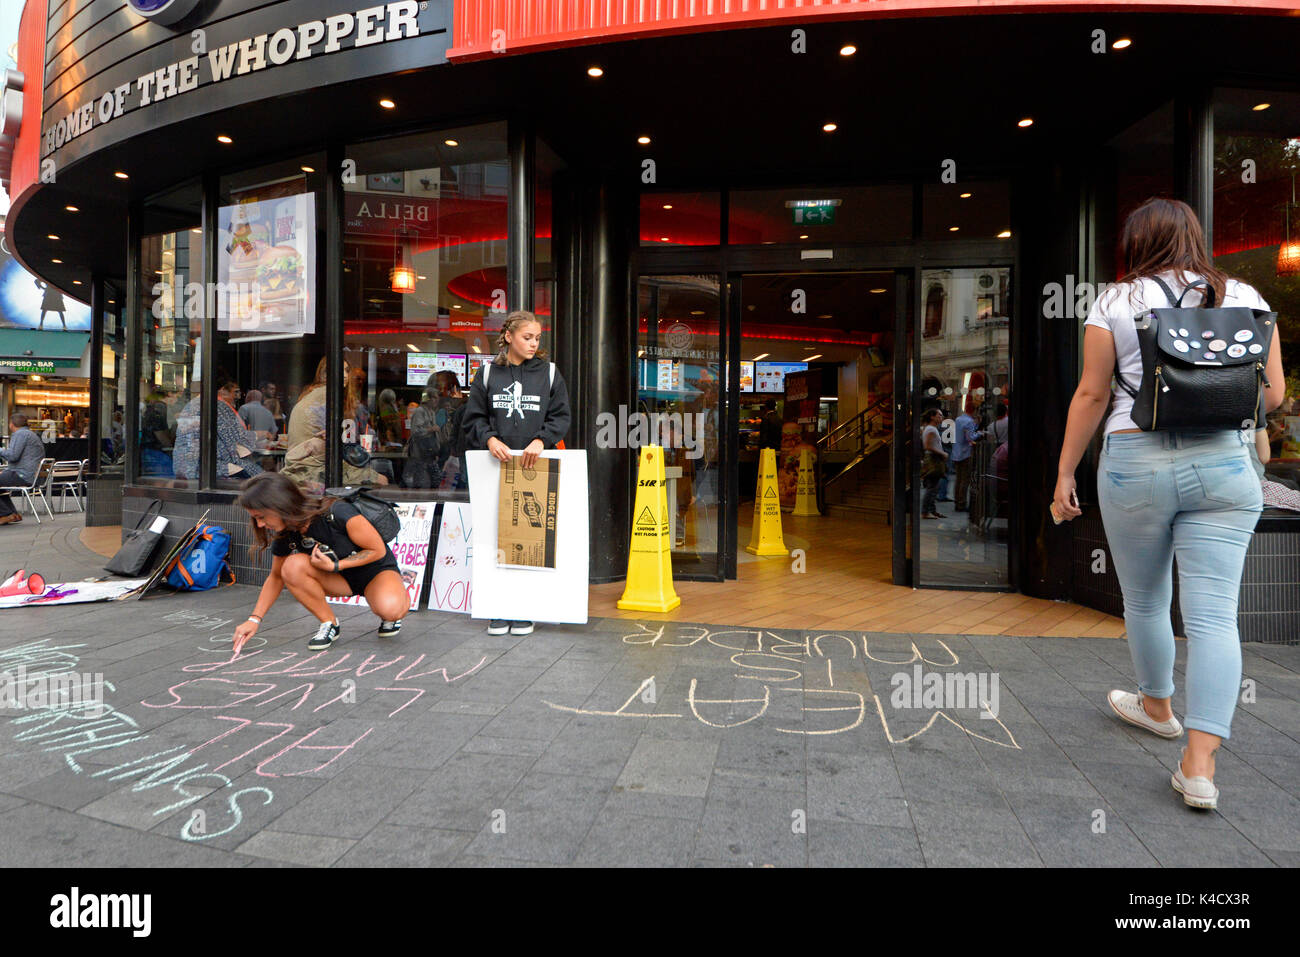 Animal rights activists protesting outside Burger King in Leicester Square, London. Chalking slogans on pavement - Stock Image